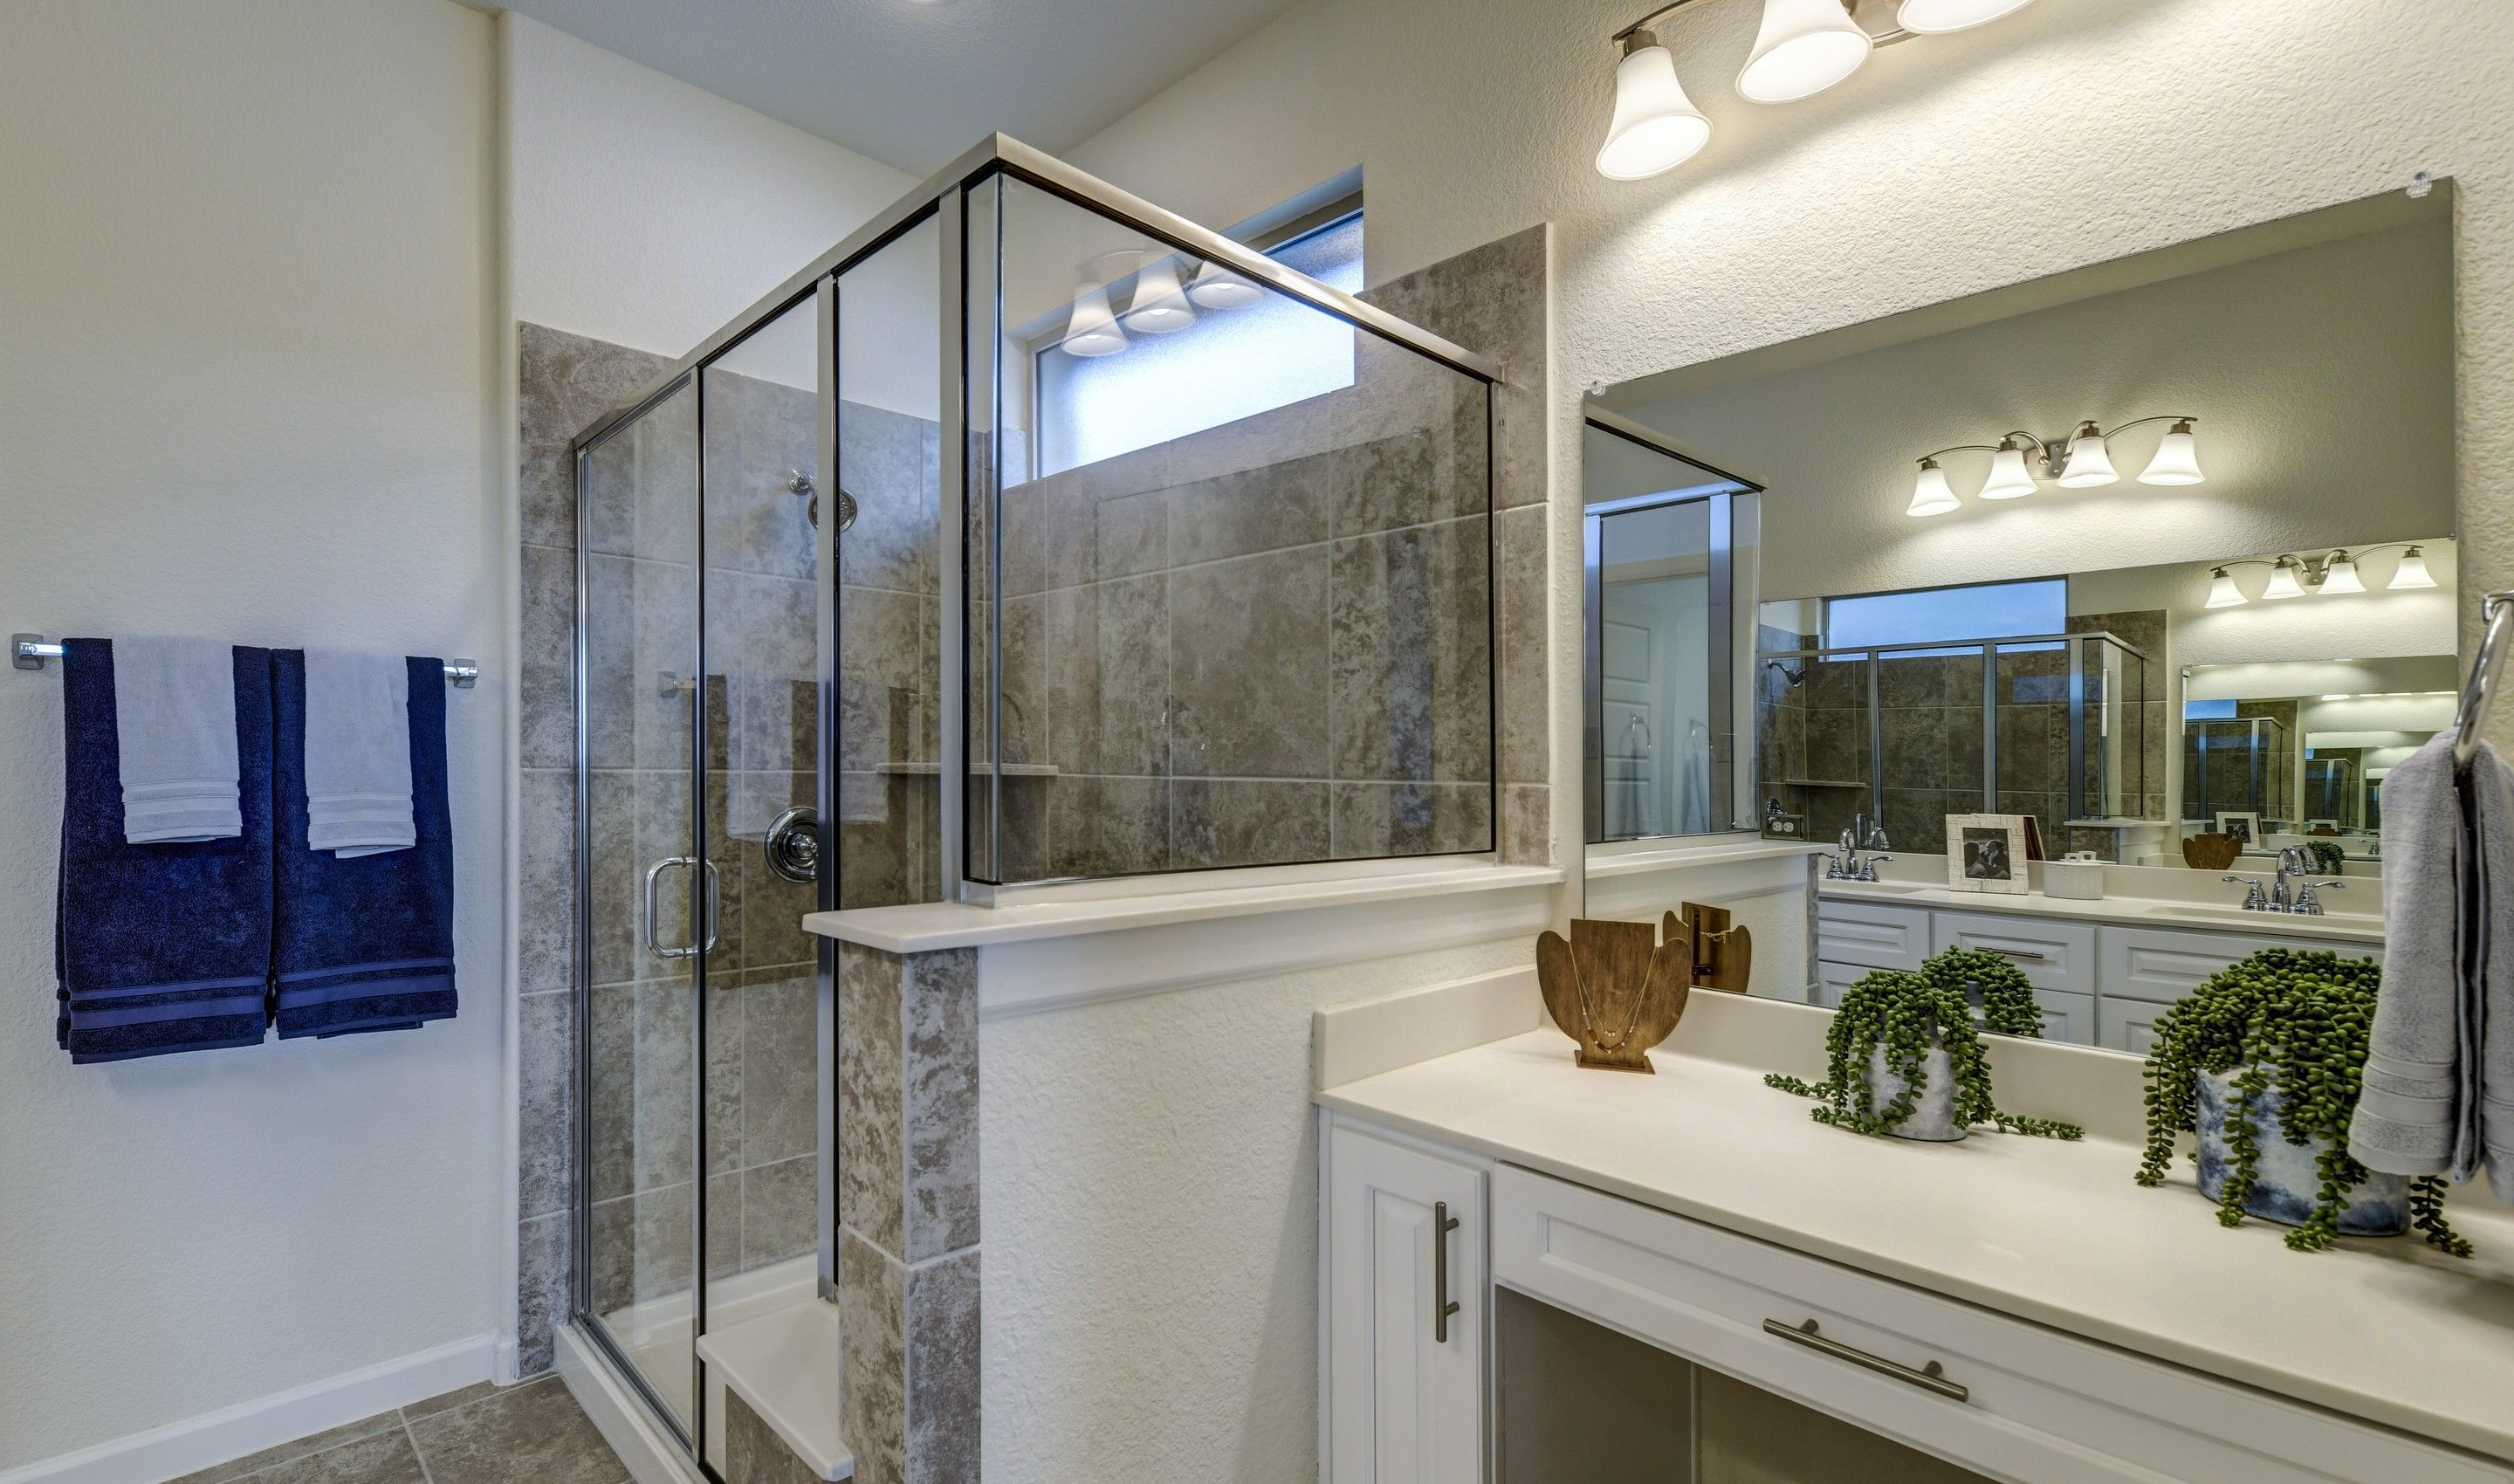 Bathroom featured in the Rockford By K. Hovnanian® Homes in Fort Worth, TX